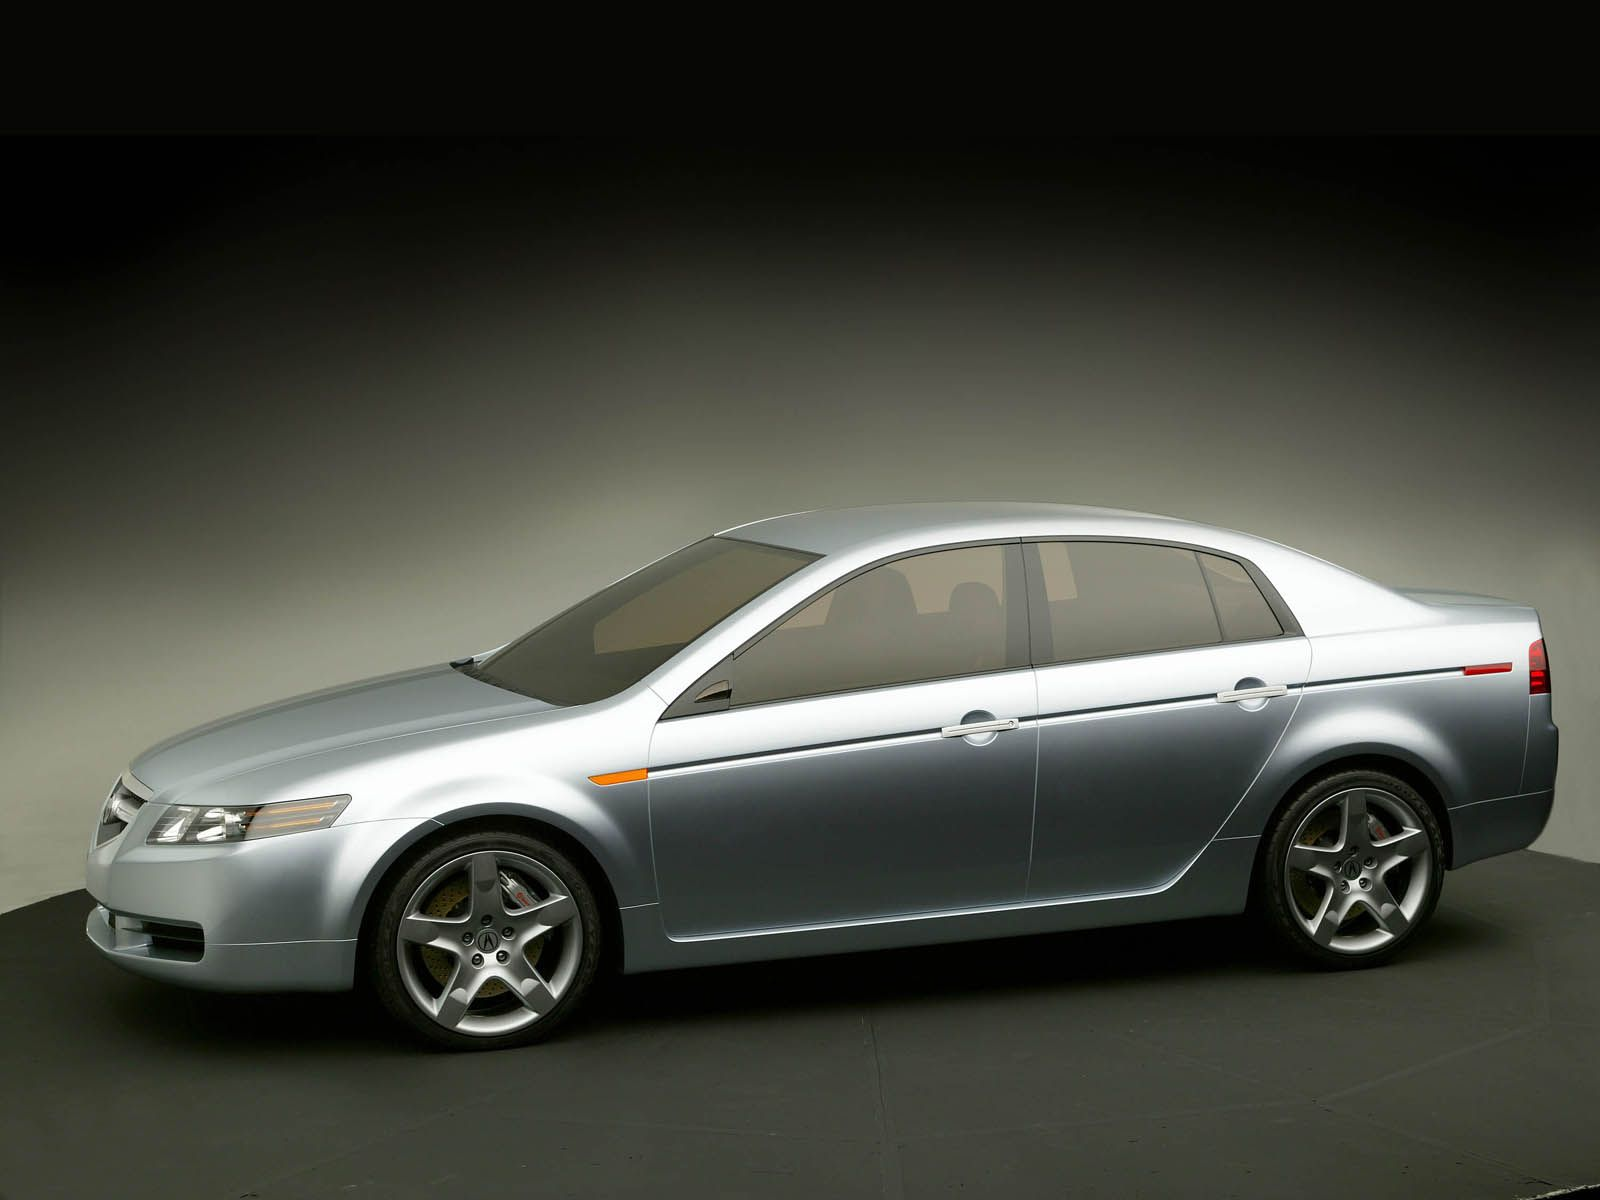 Very fast silver color Acura TL Concept Car